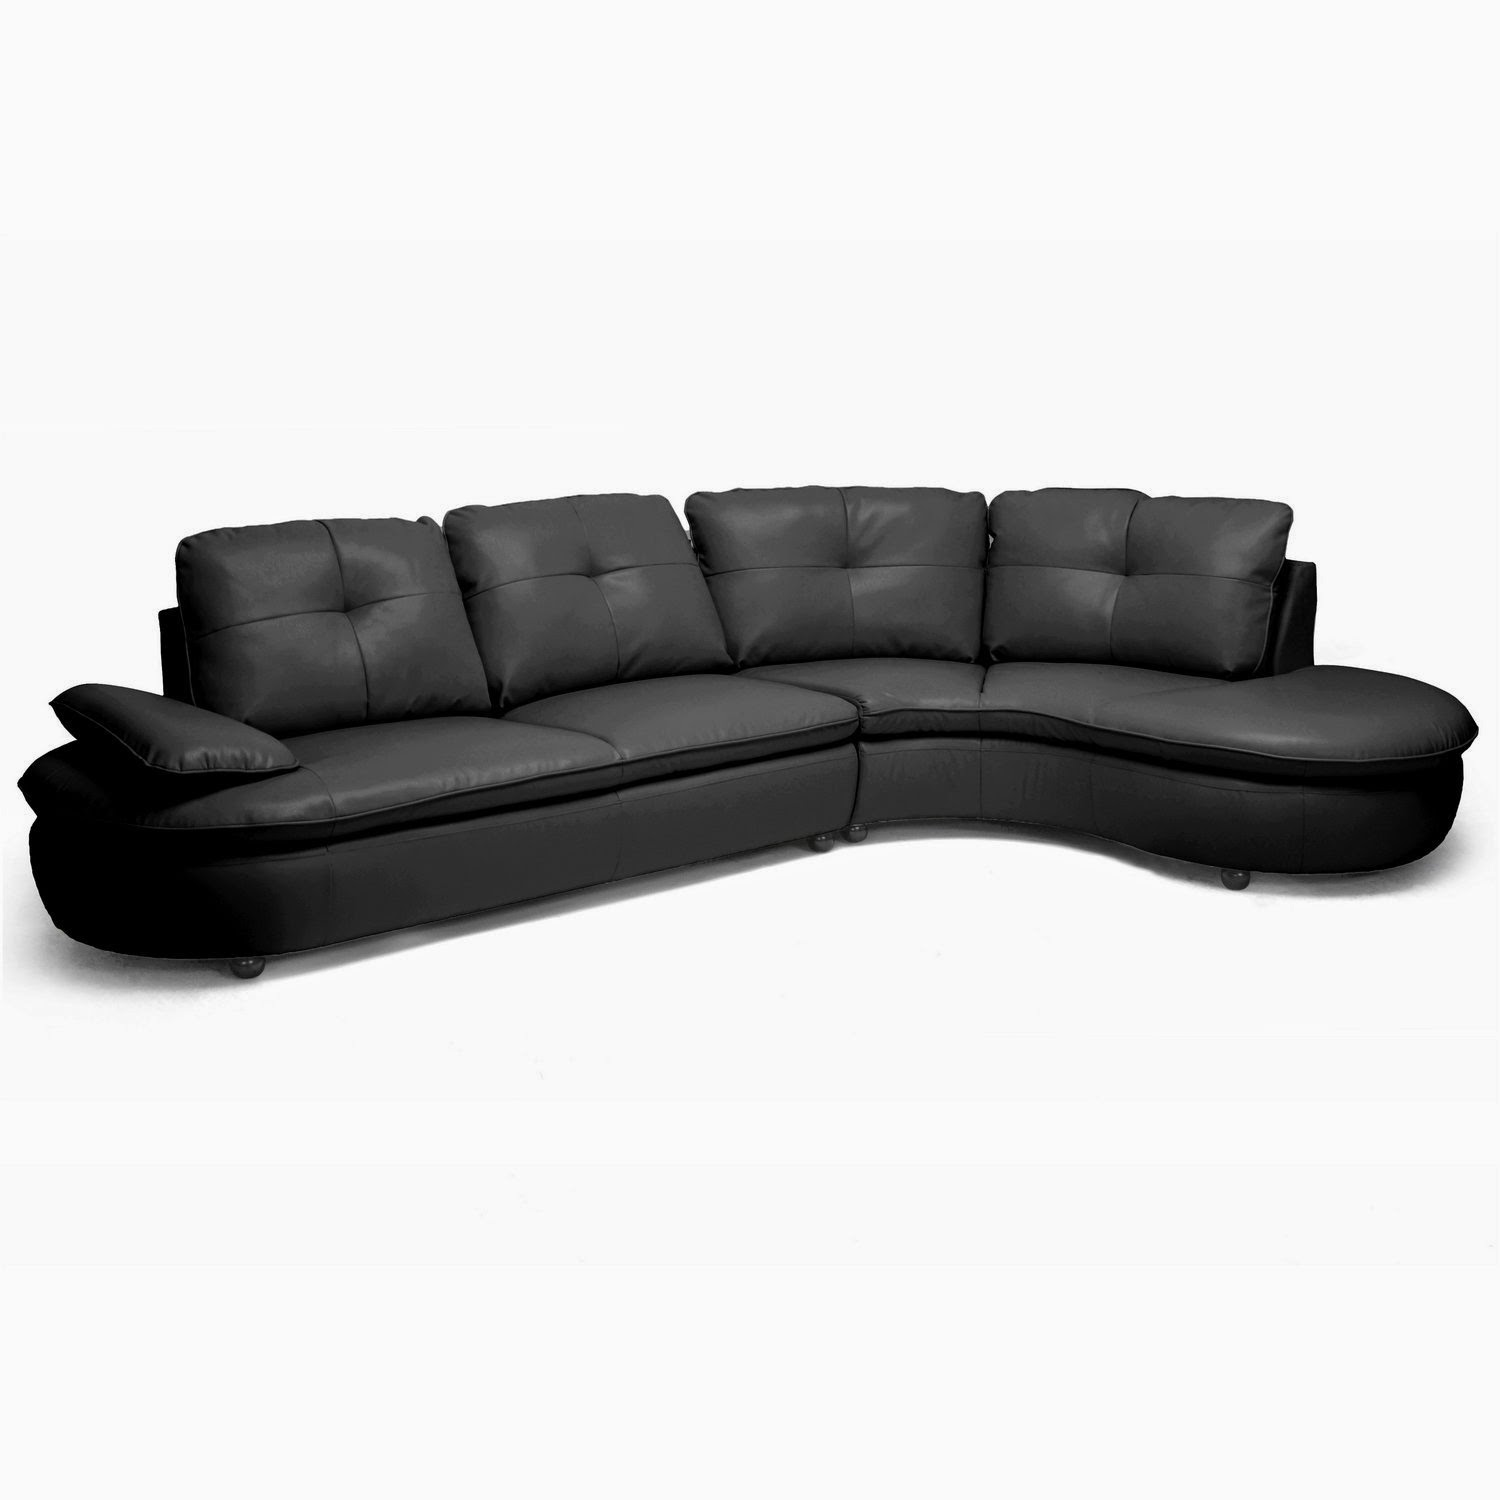 Modern Curved Sofa For Sales: Curved Contemporary Sofa